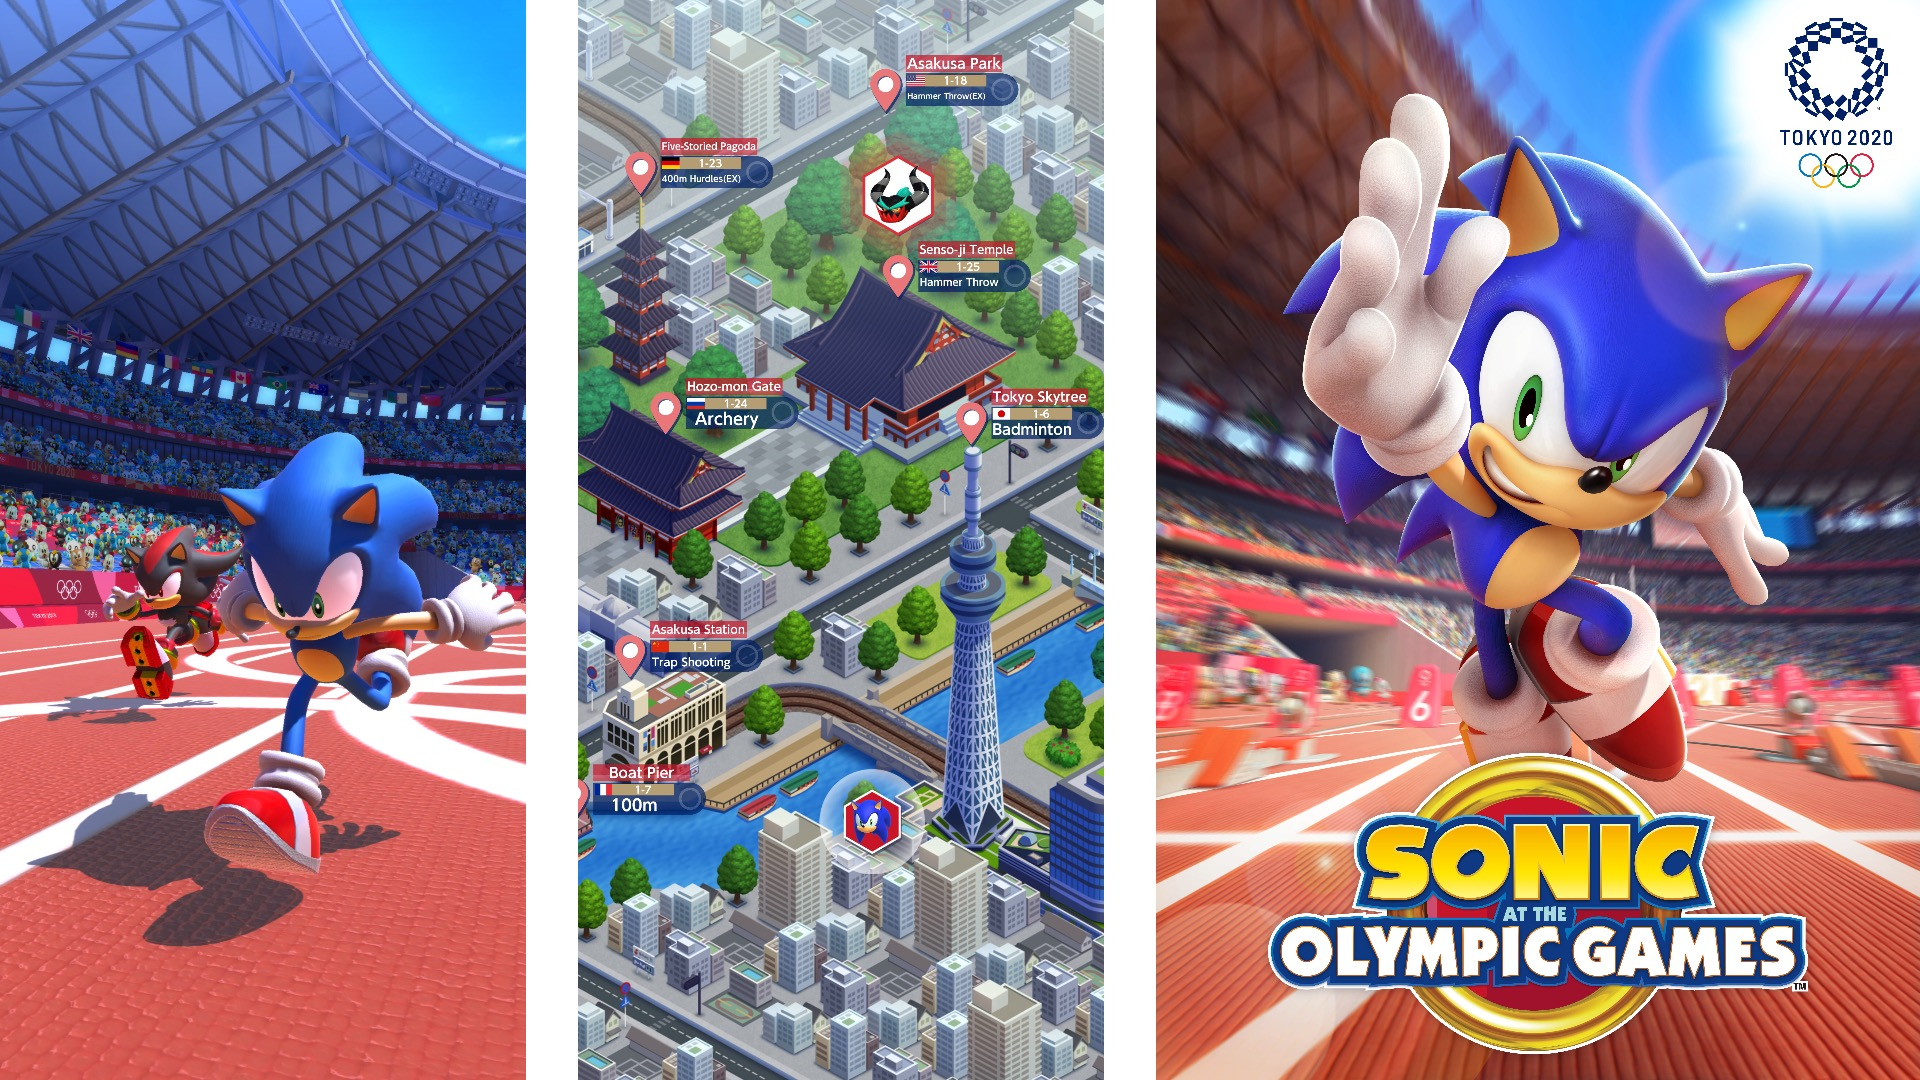 Android Games 2020.Sonic At The Olympic Games Tokyo 2020 Is The Official